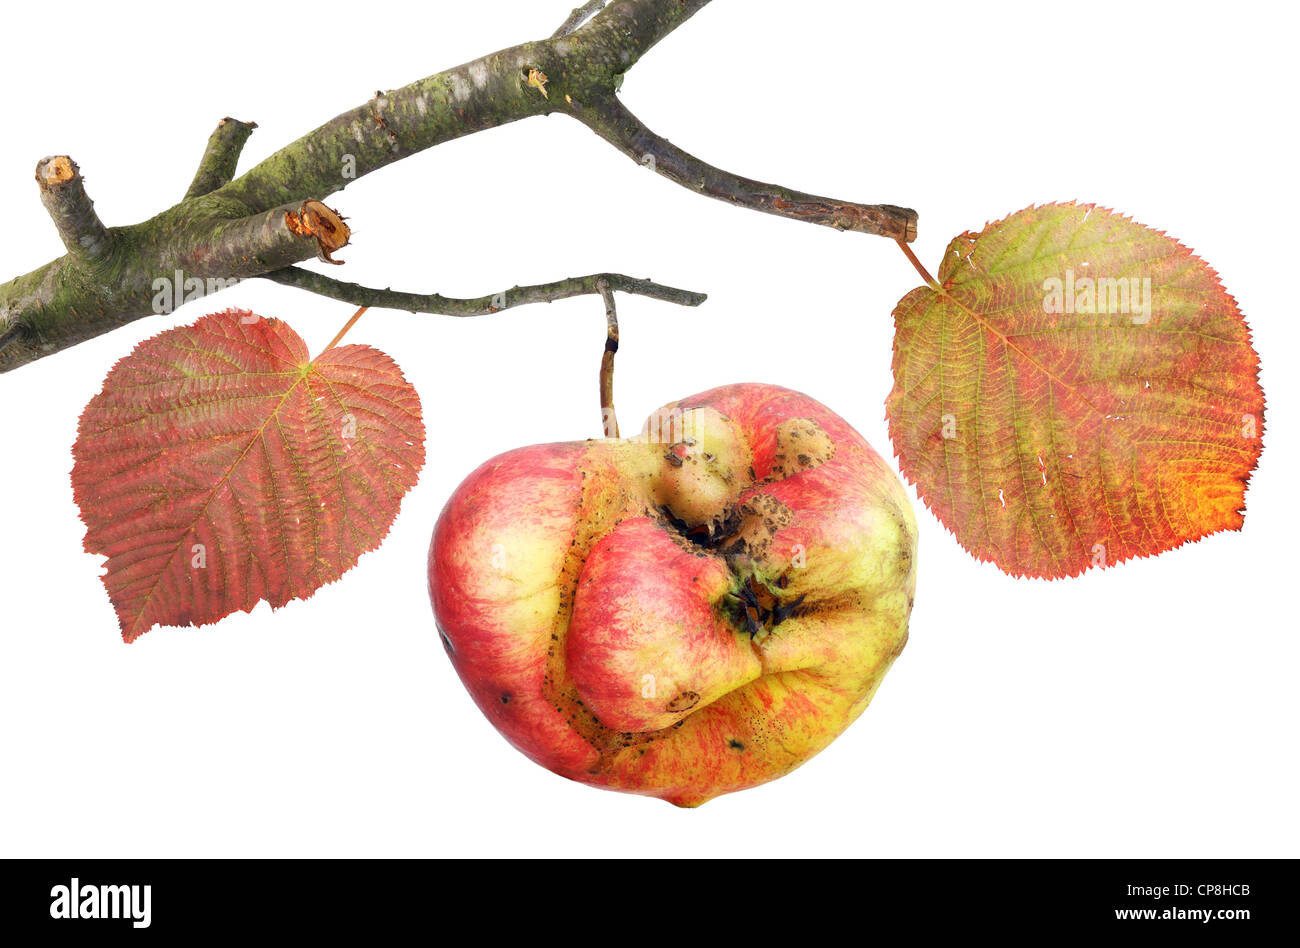 Tasteless curve apple on a branch a simple collage isolated - Stock Image